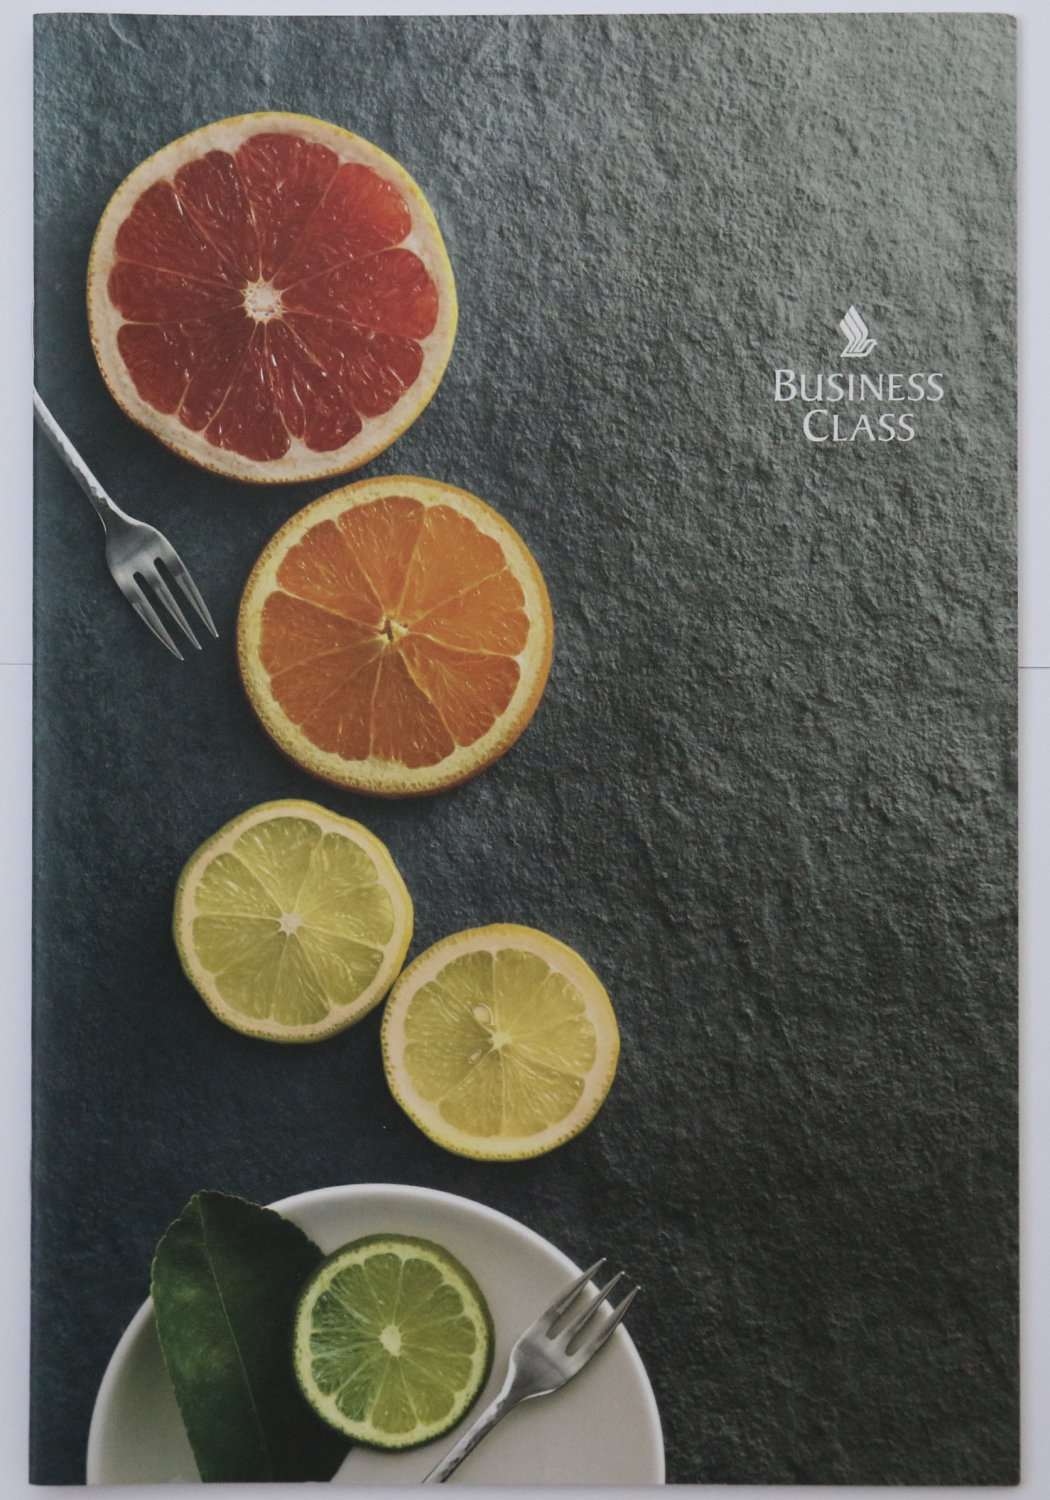 Singapore Airlines SQ 231 Business Class Airline Menu SIN - SYD 11 2019 Sydney